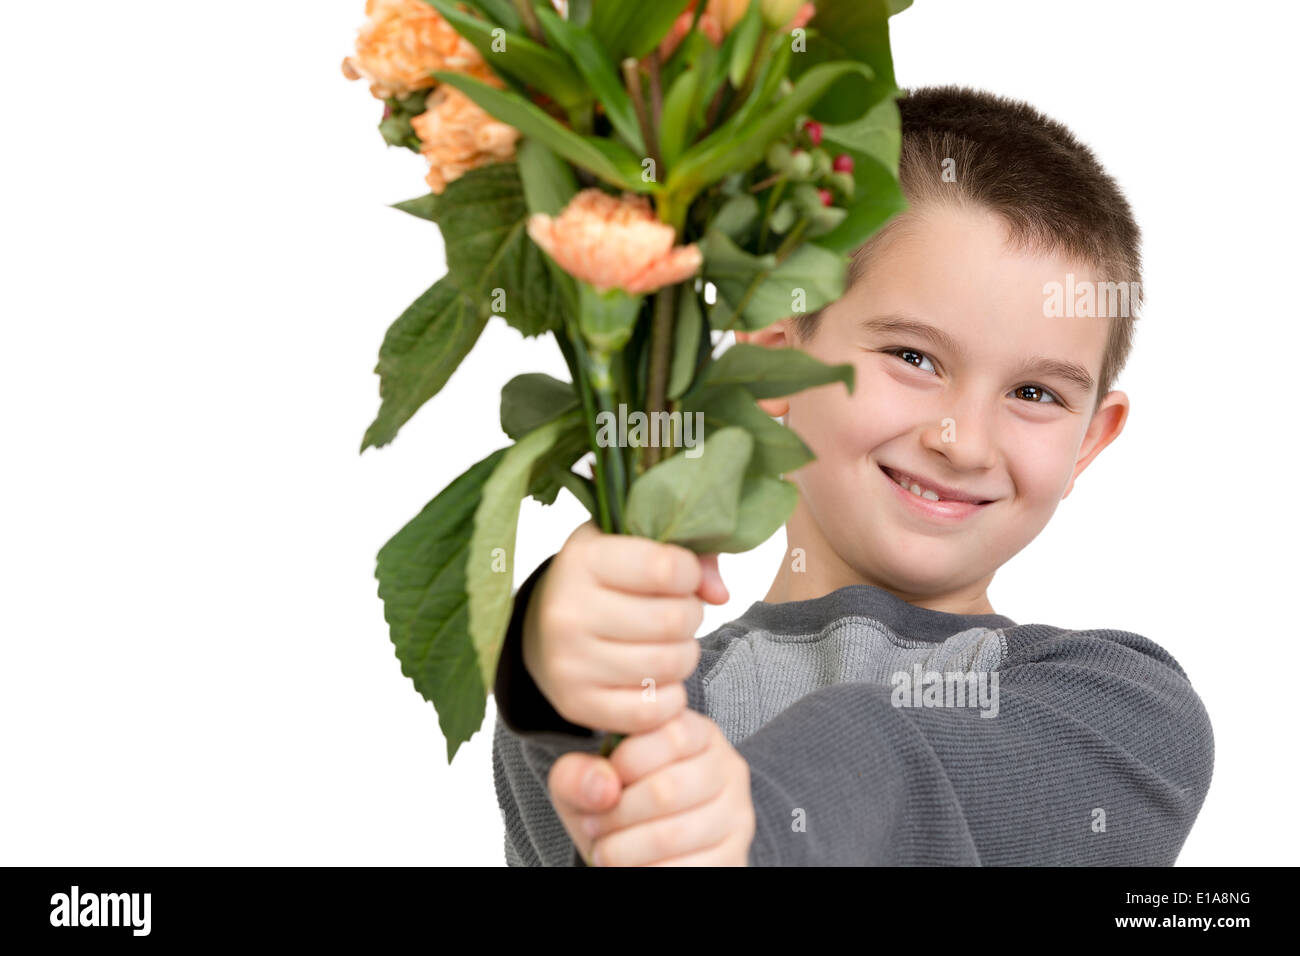 Eight Years Old Boy Presenting Flowers Perhaps He Is Trying To Say